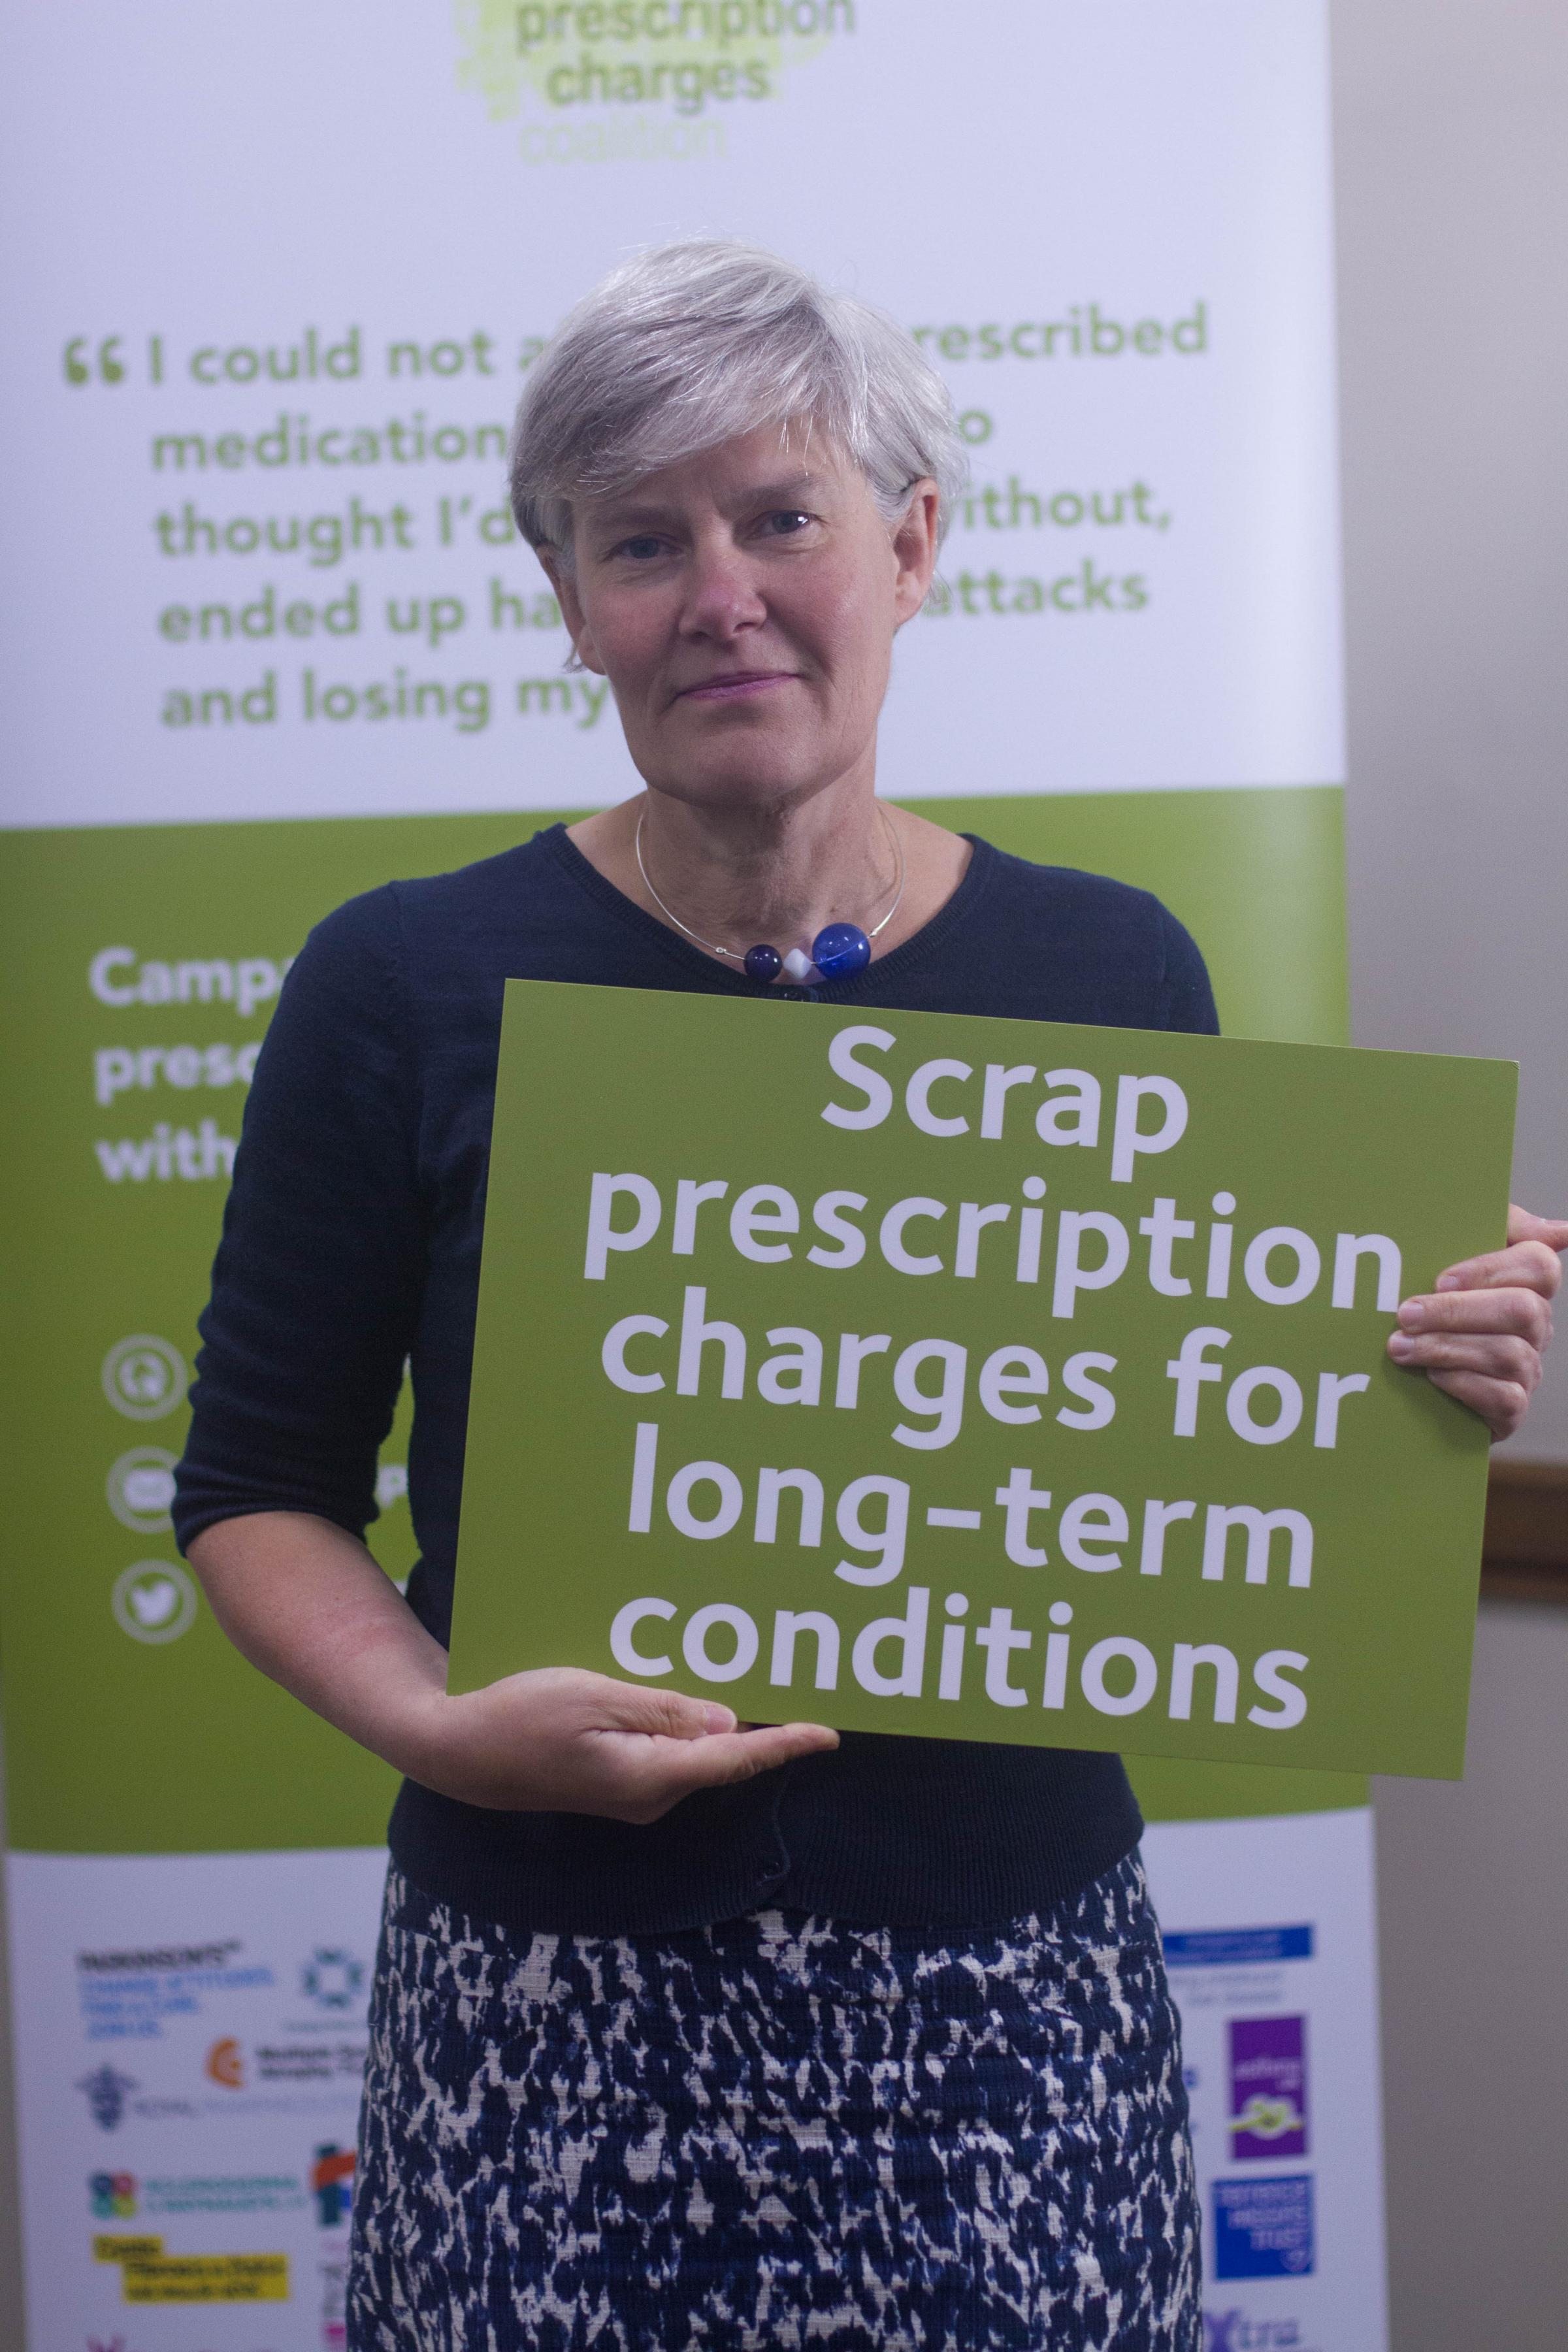 Kate Green, MP for Stretford and Urmston, has pledged to help scrap prescription charges for people in England with a long-term condition.